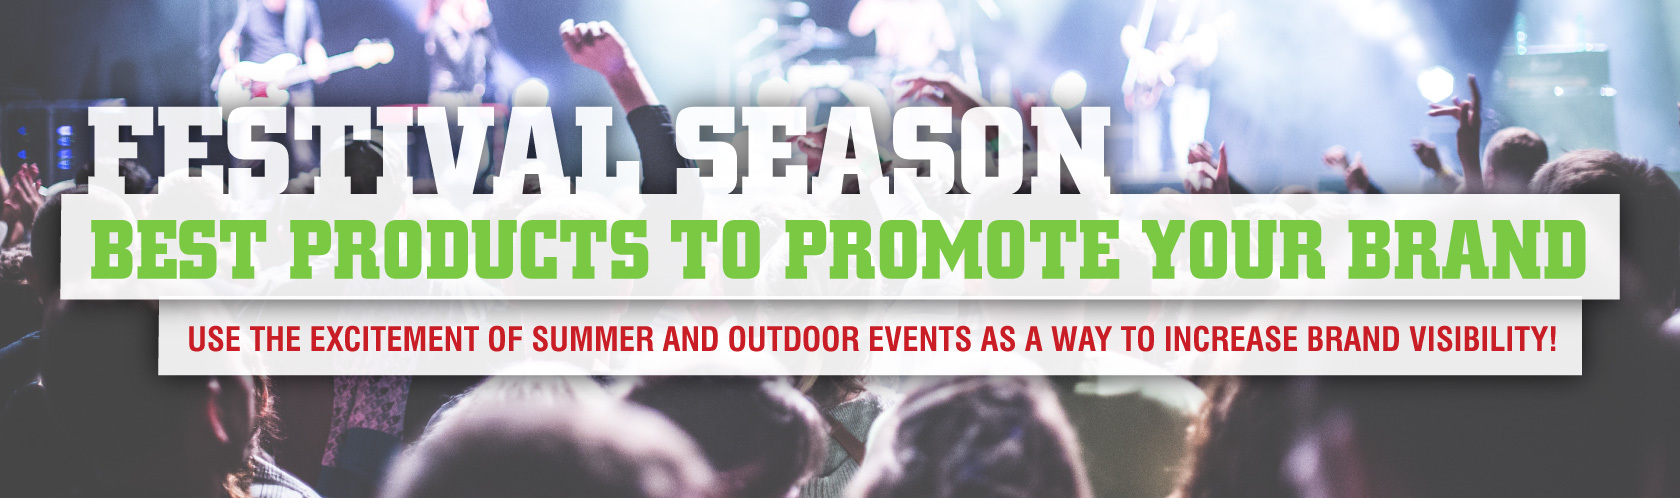 Festival Season: Best Products to Promote Your Brand